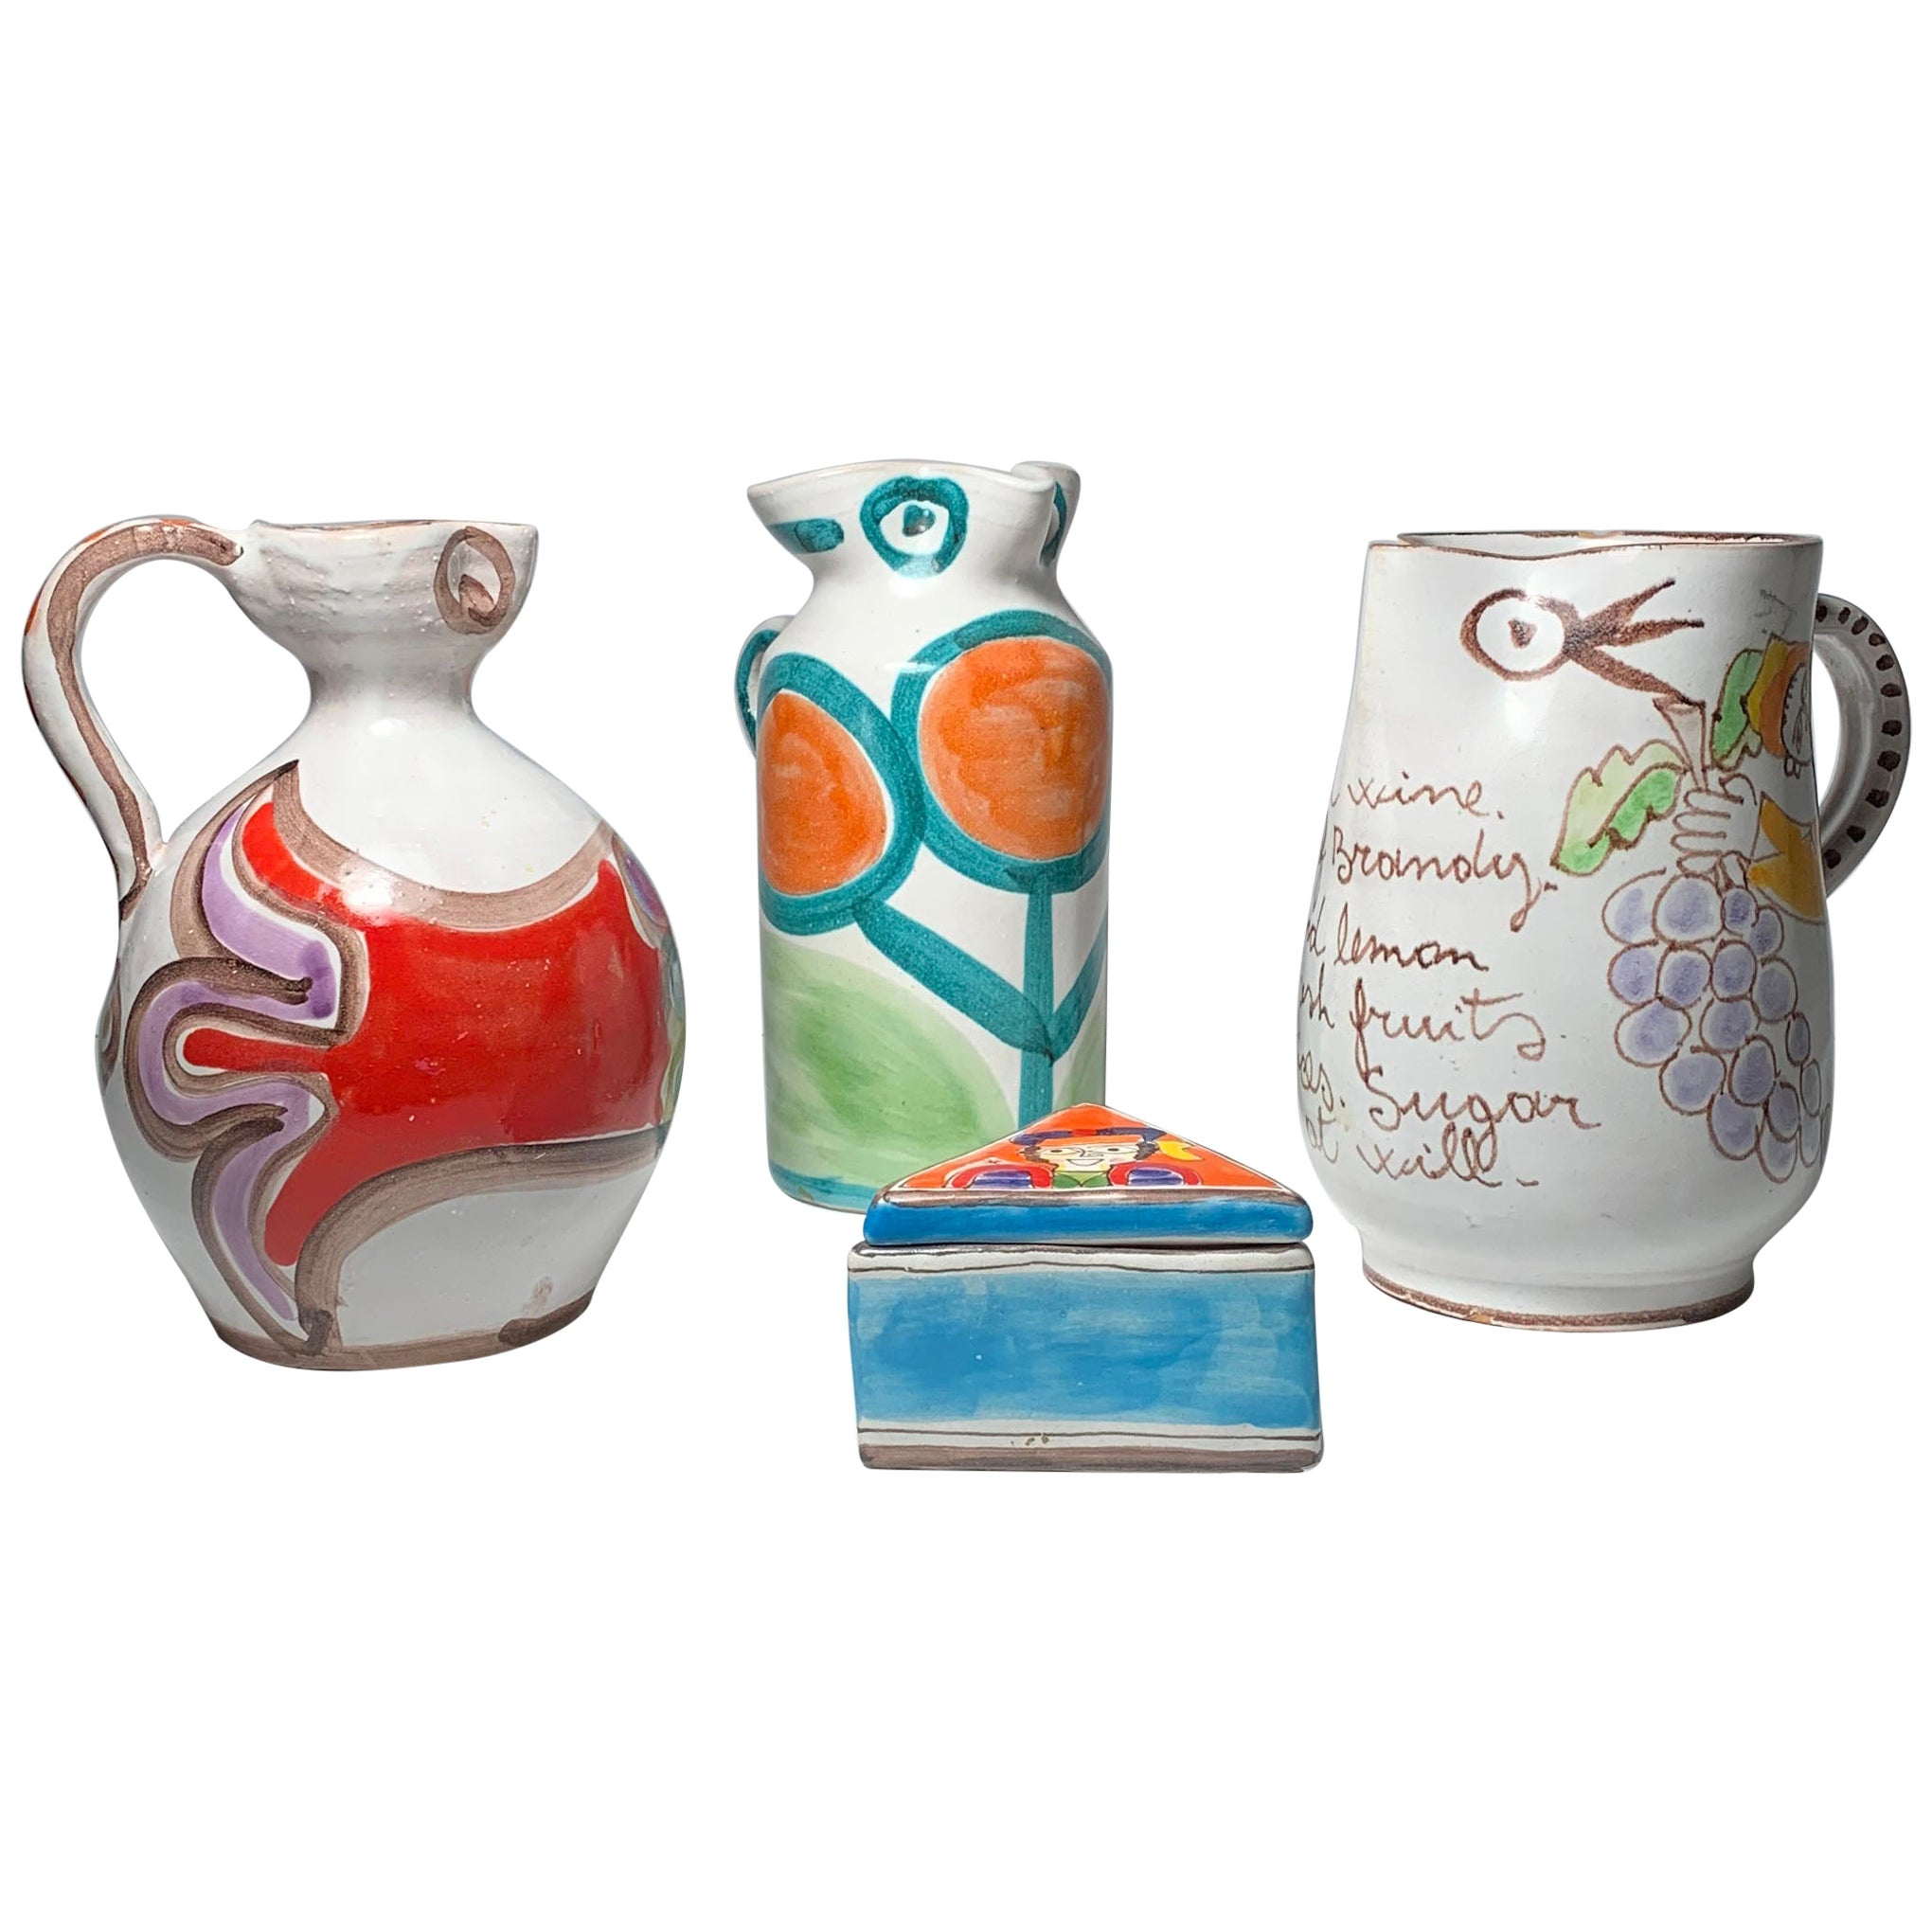 Giovanni DeSimone Pottery Pitchers Collection Grouping